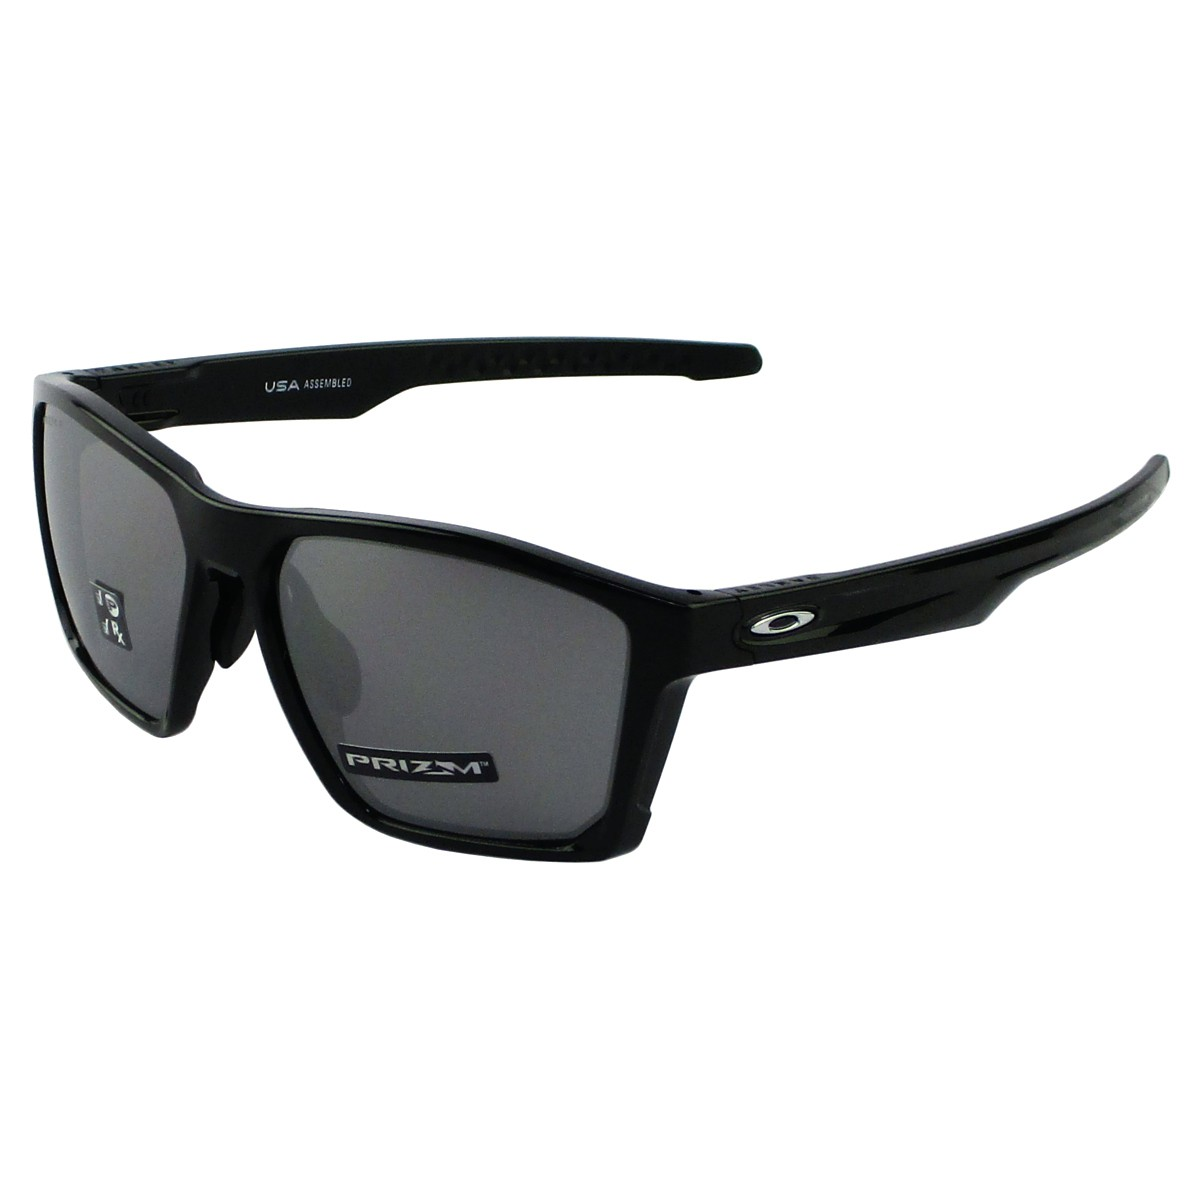 ターゲットライン (ASIA FIT) Polished Black/Prizm Black Polarized